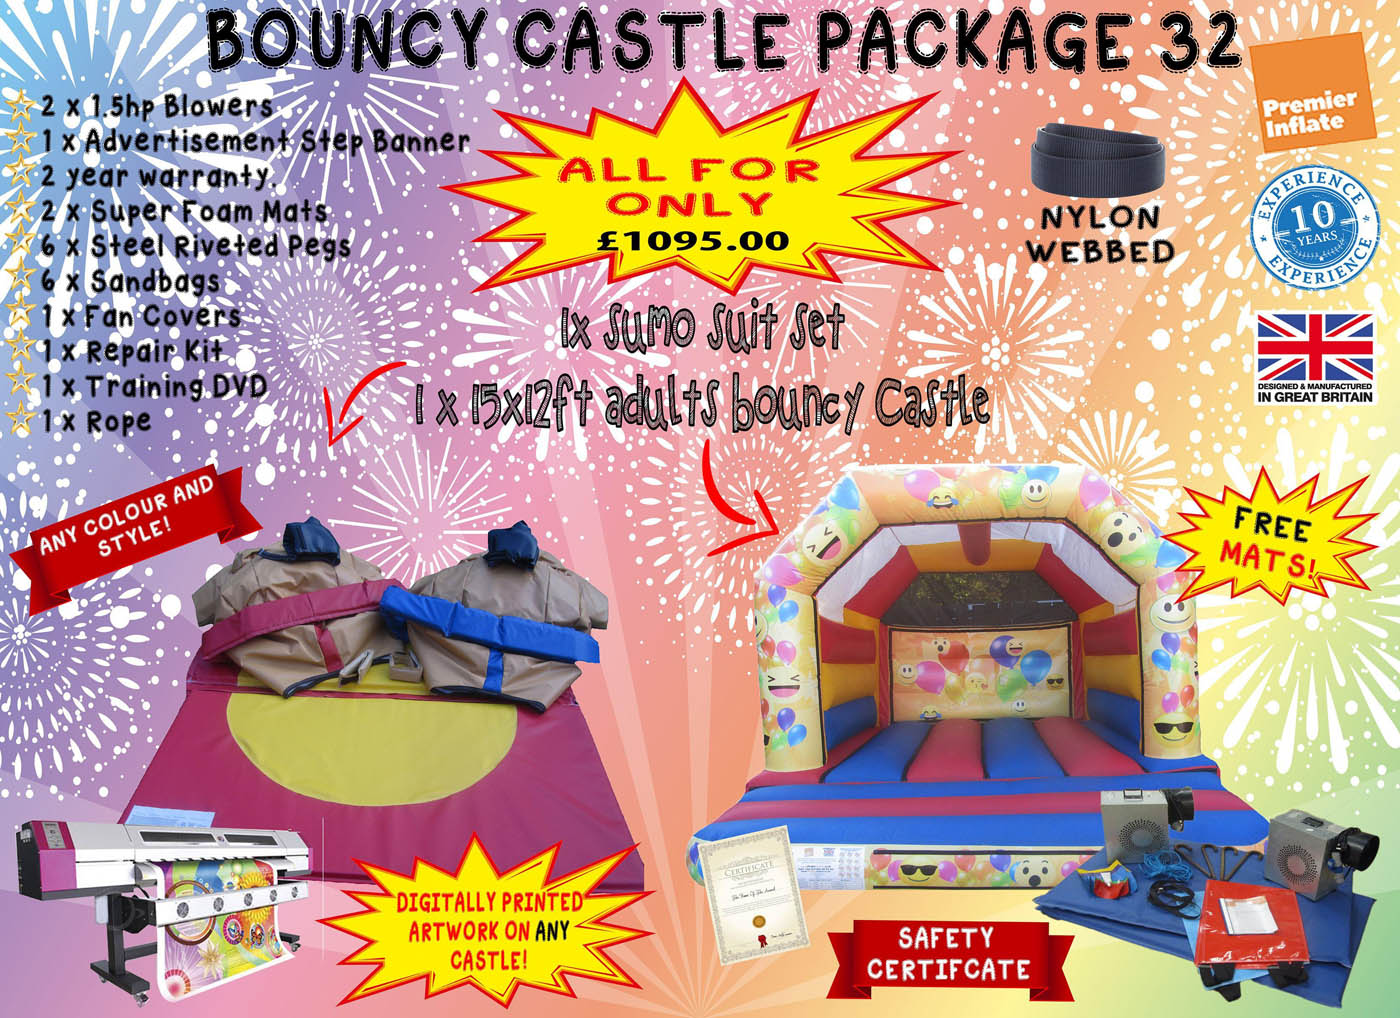 Inflatable-bouncy-castle-package-32-compressor